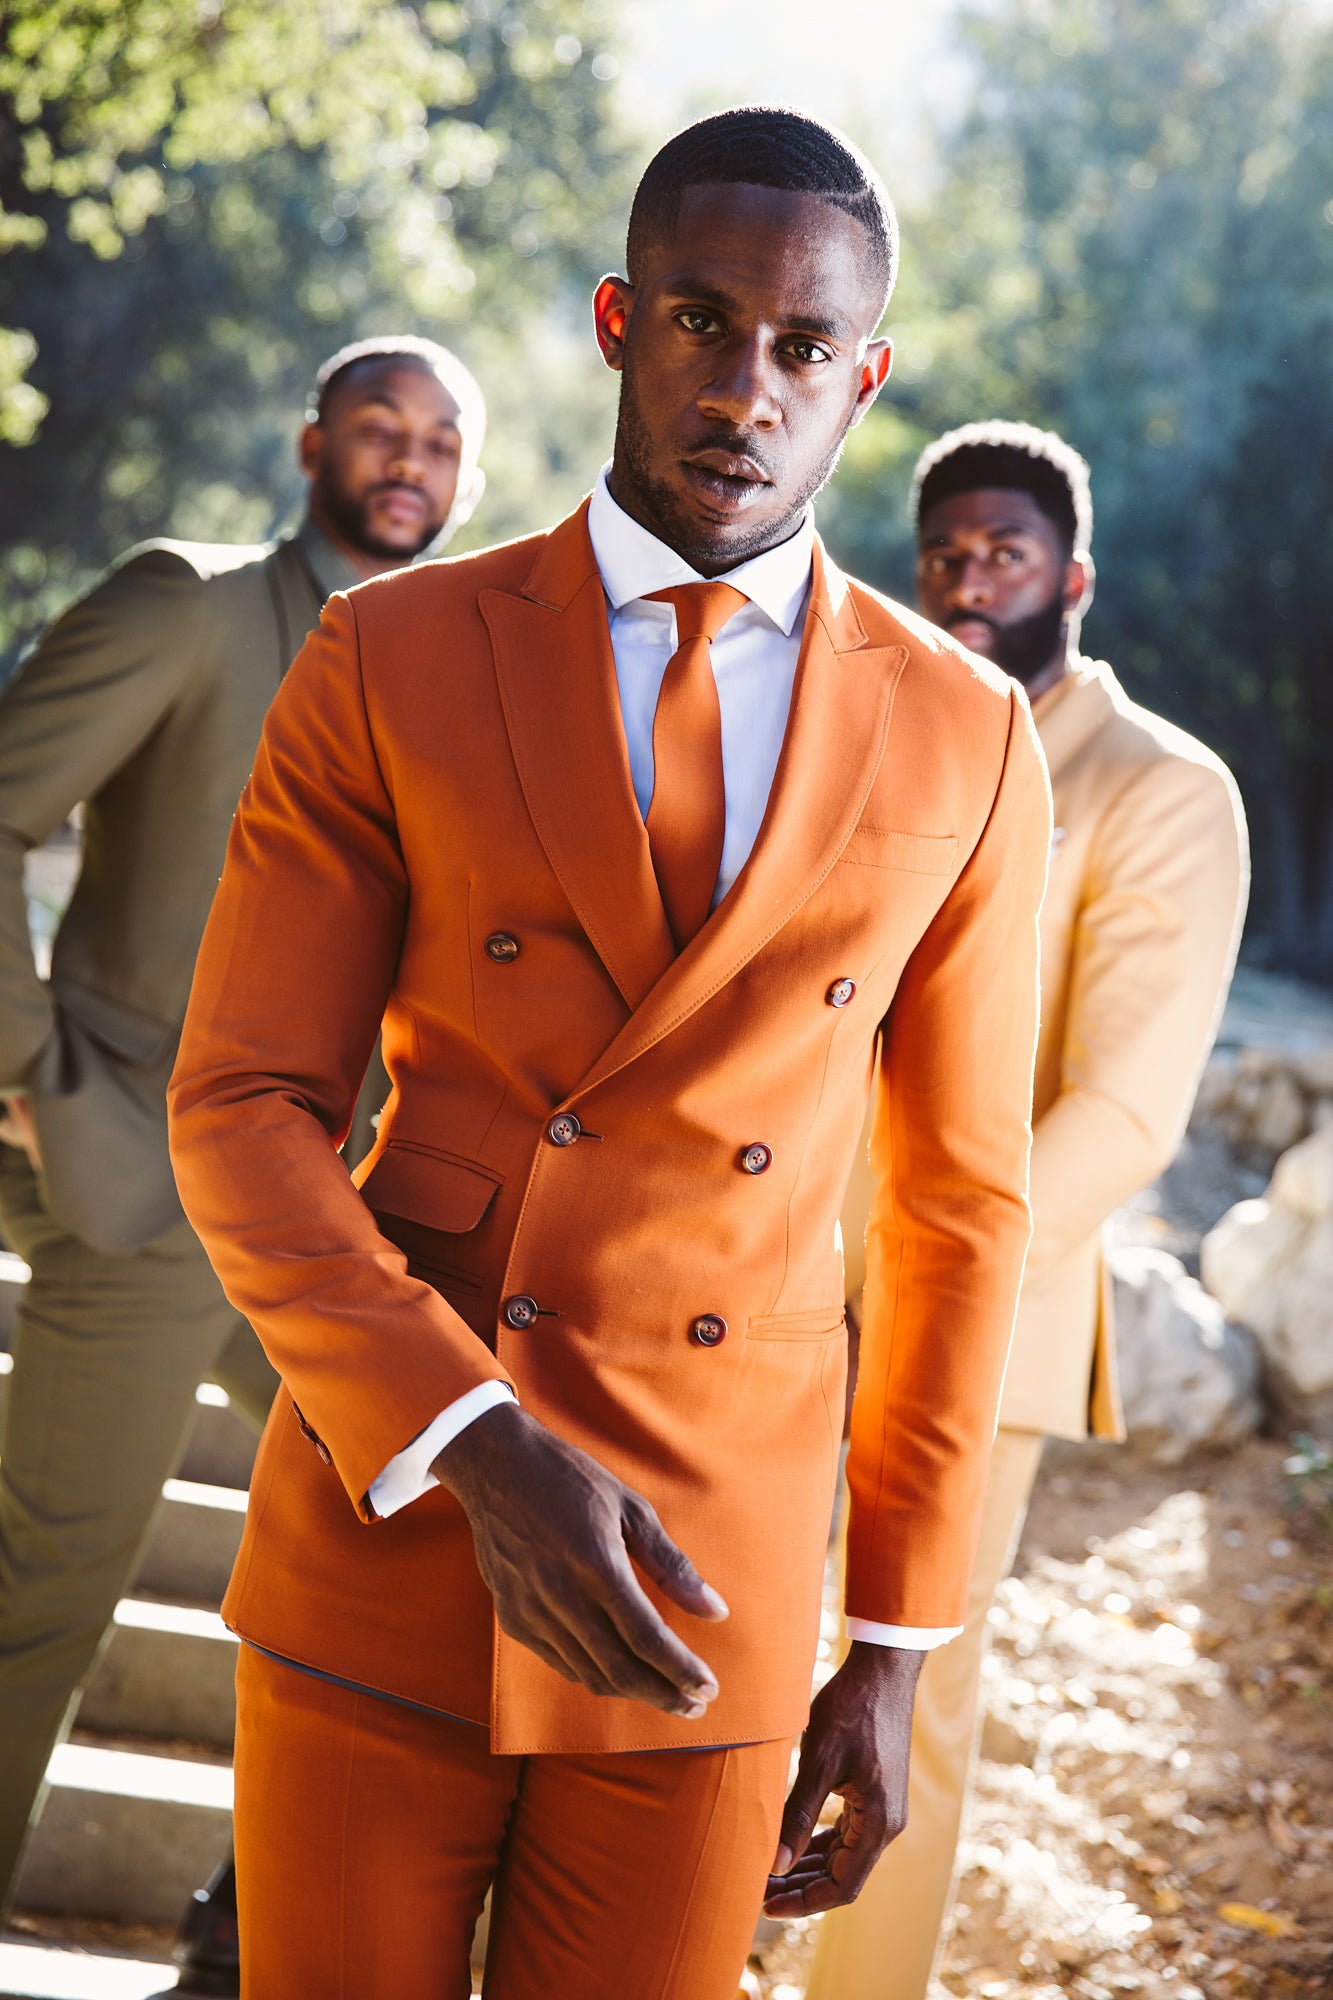 Vermillion Orange Double breasted Suit